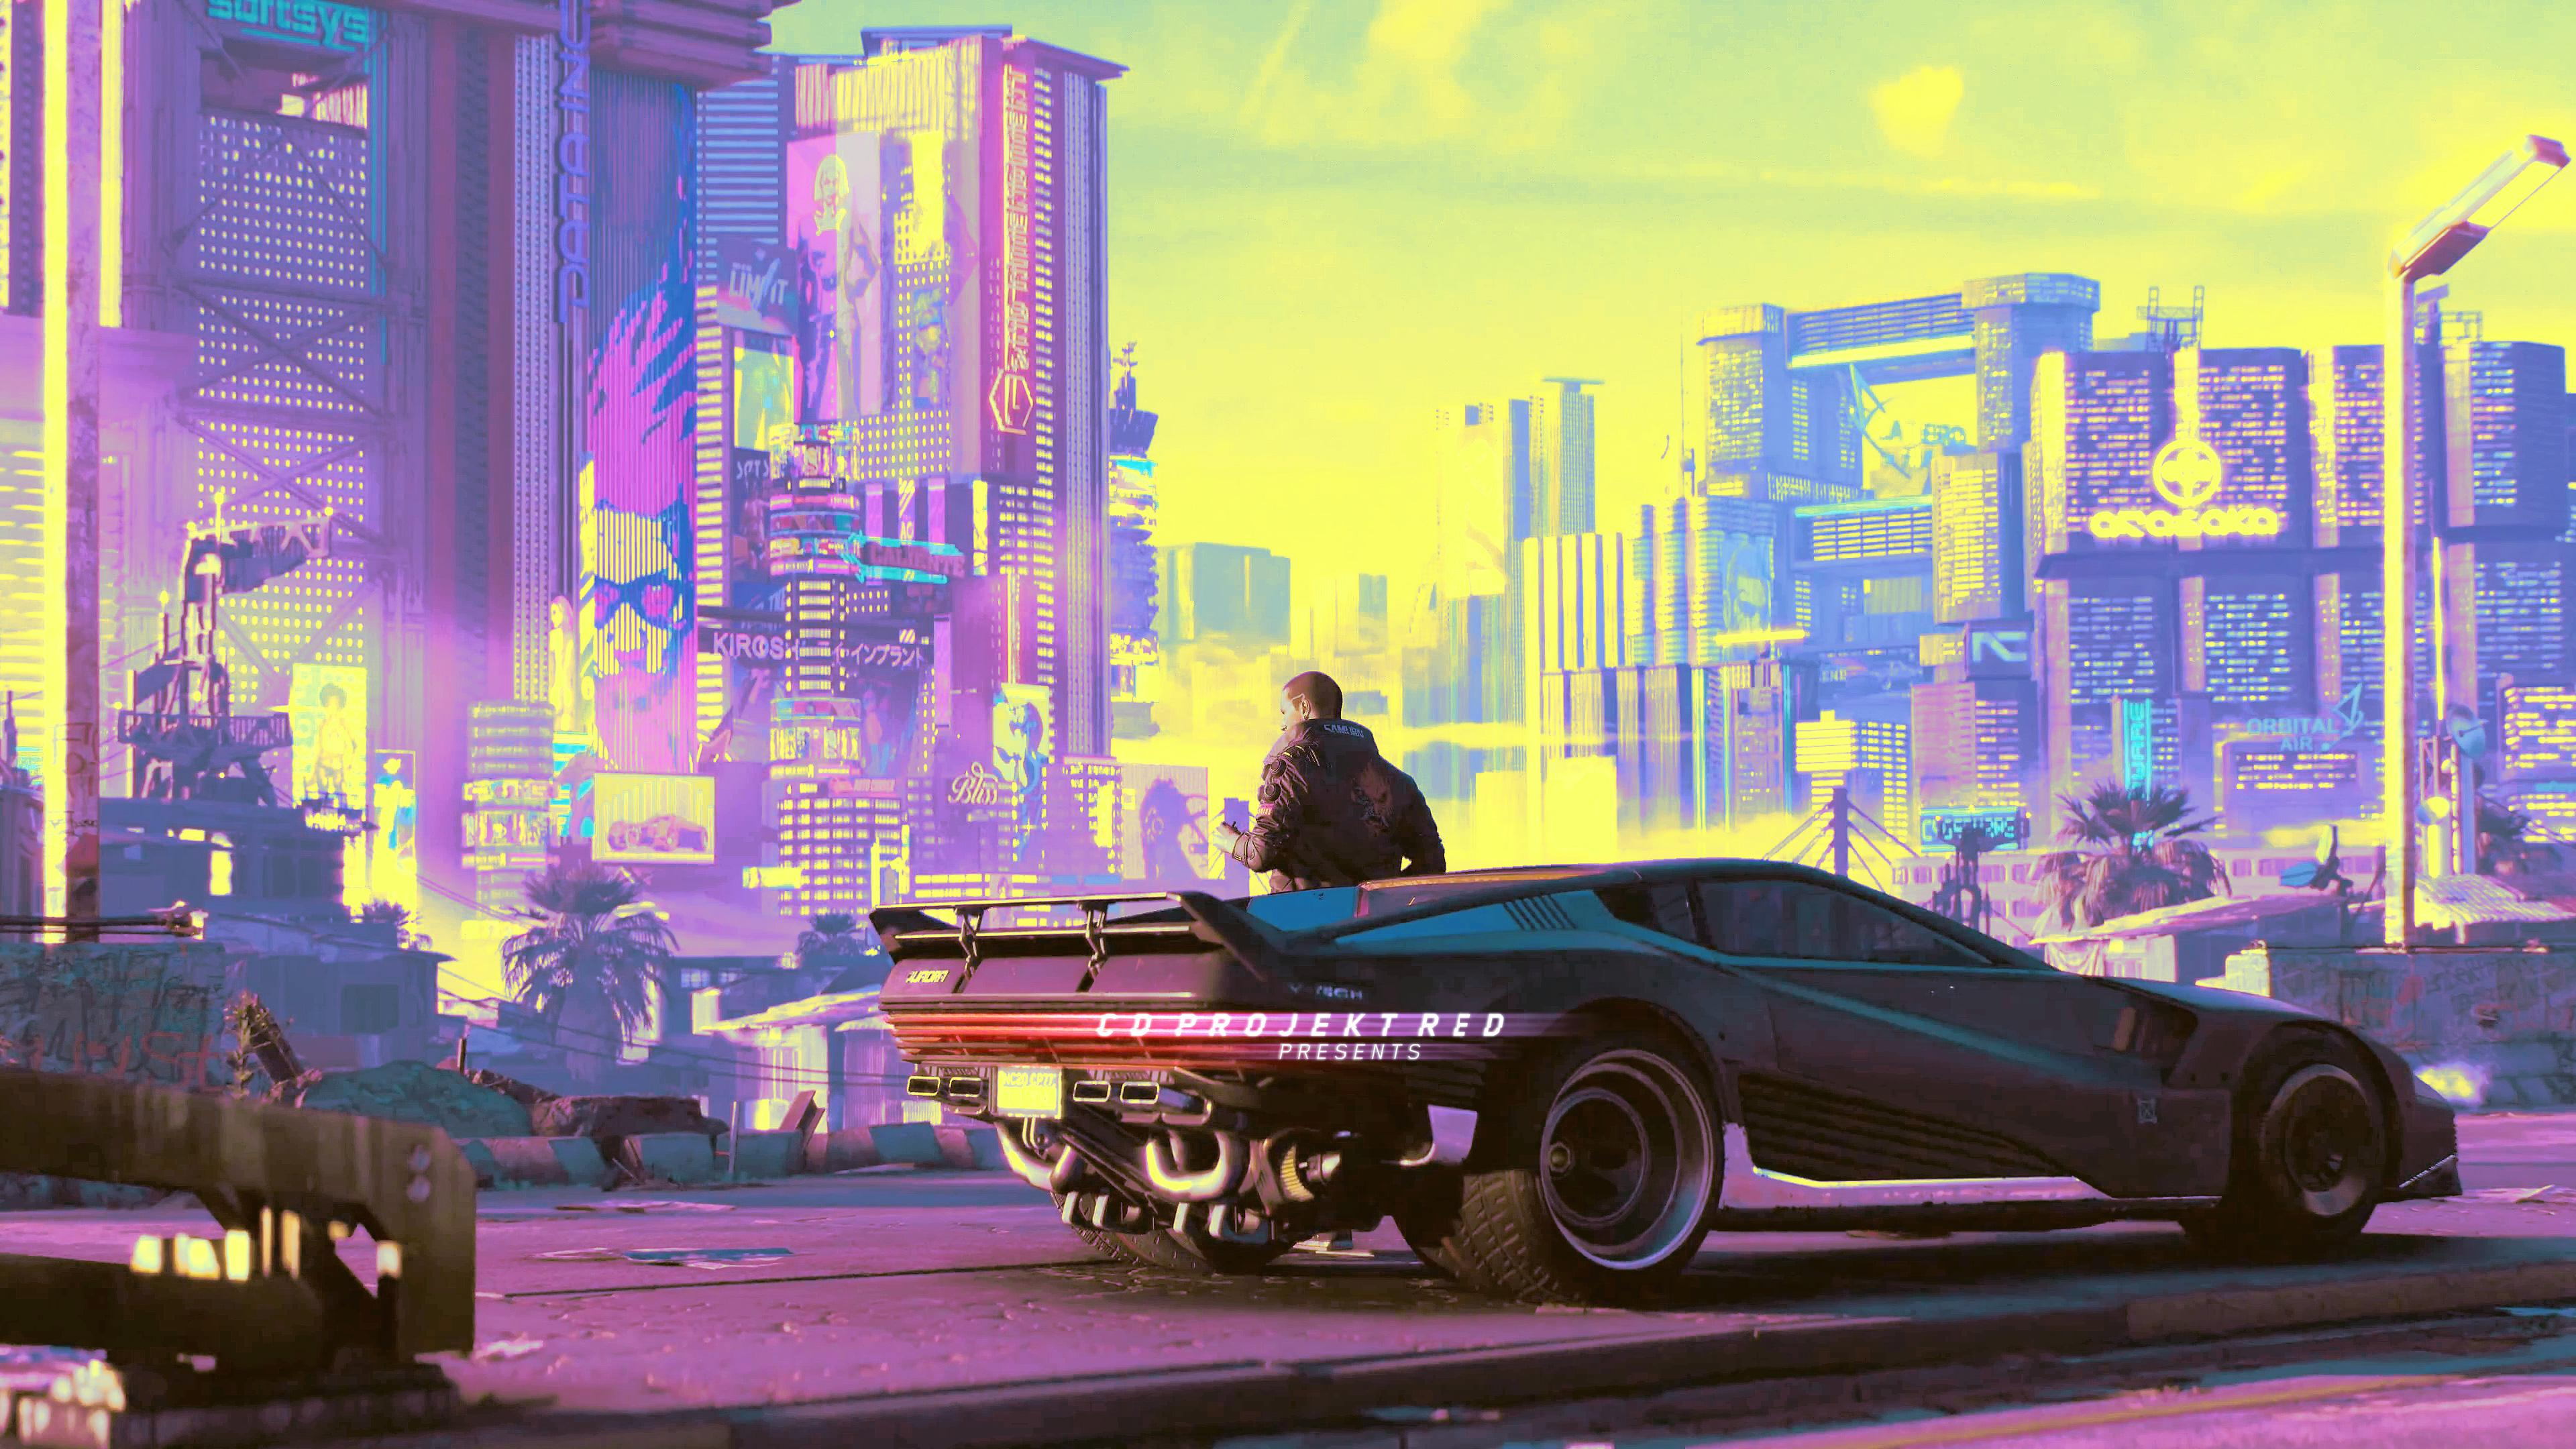 Cyberpunk Wallpapers on